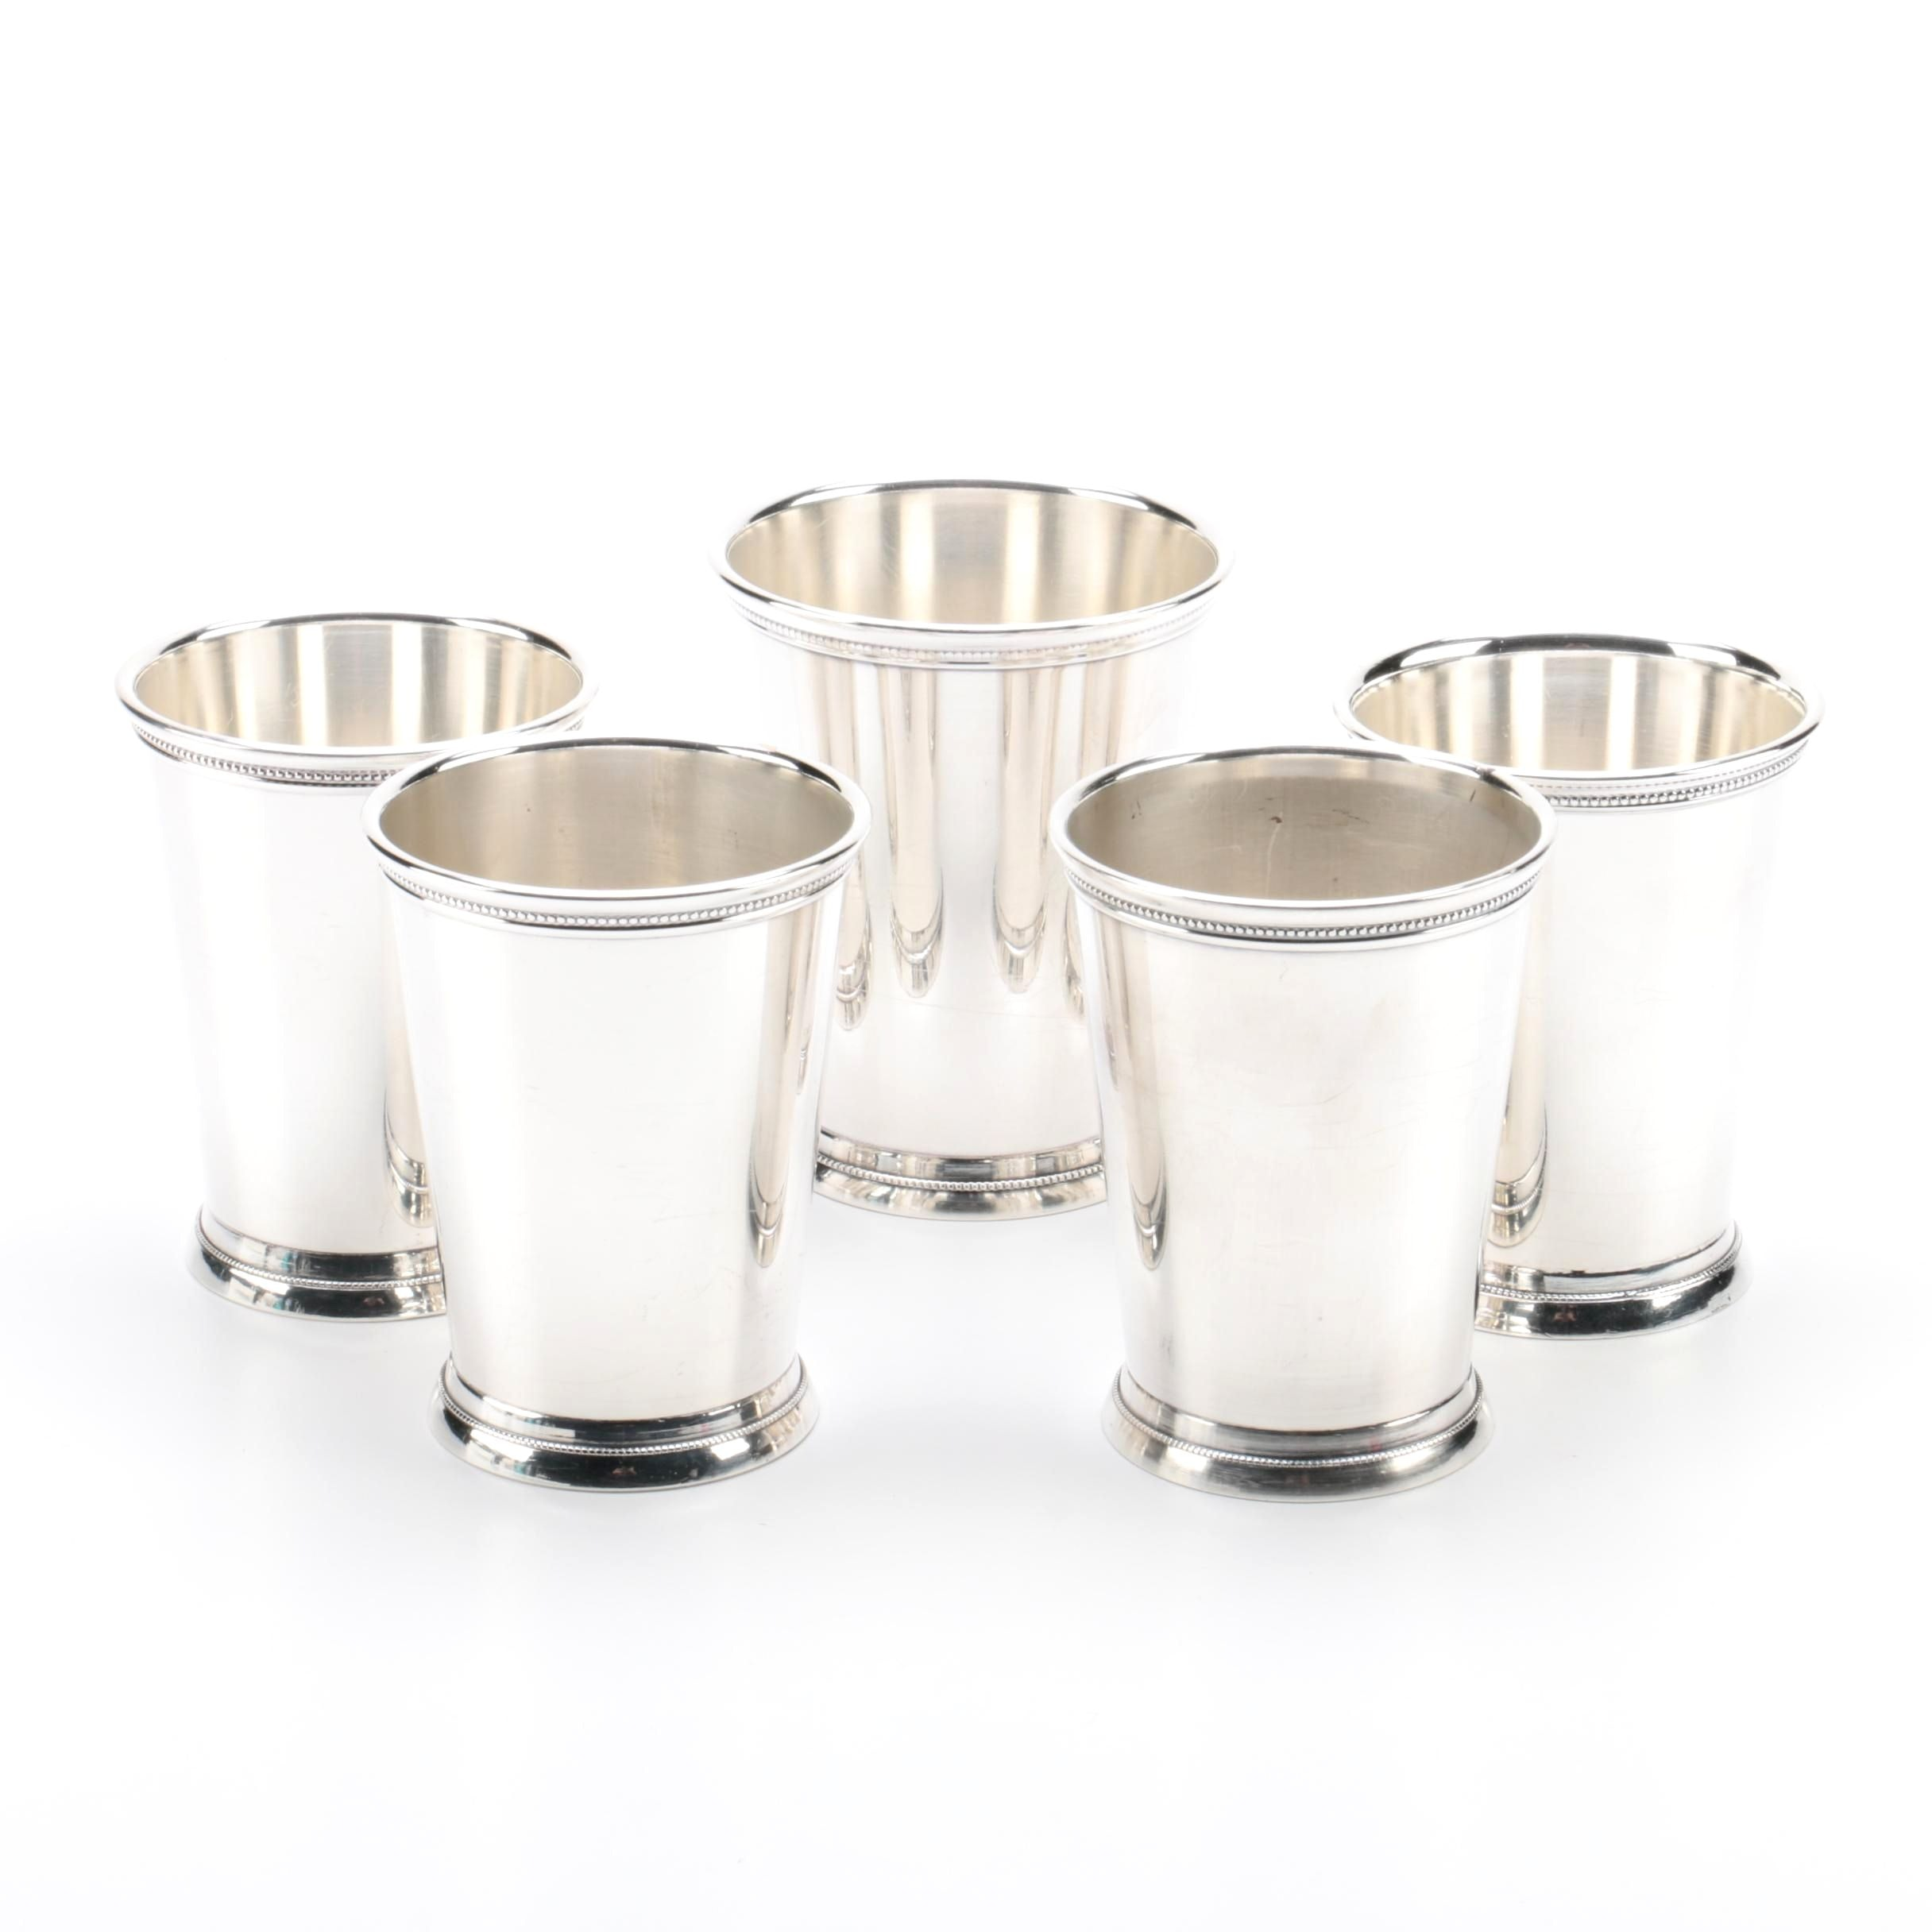 Webster-Wilcox Silver Plate Mint Julep Cups